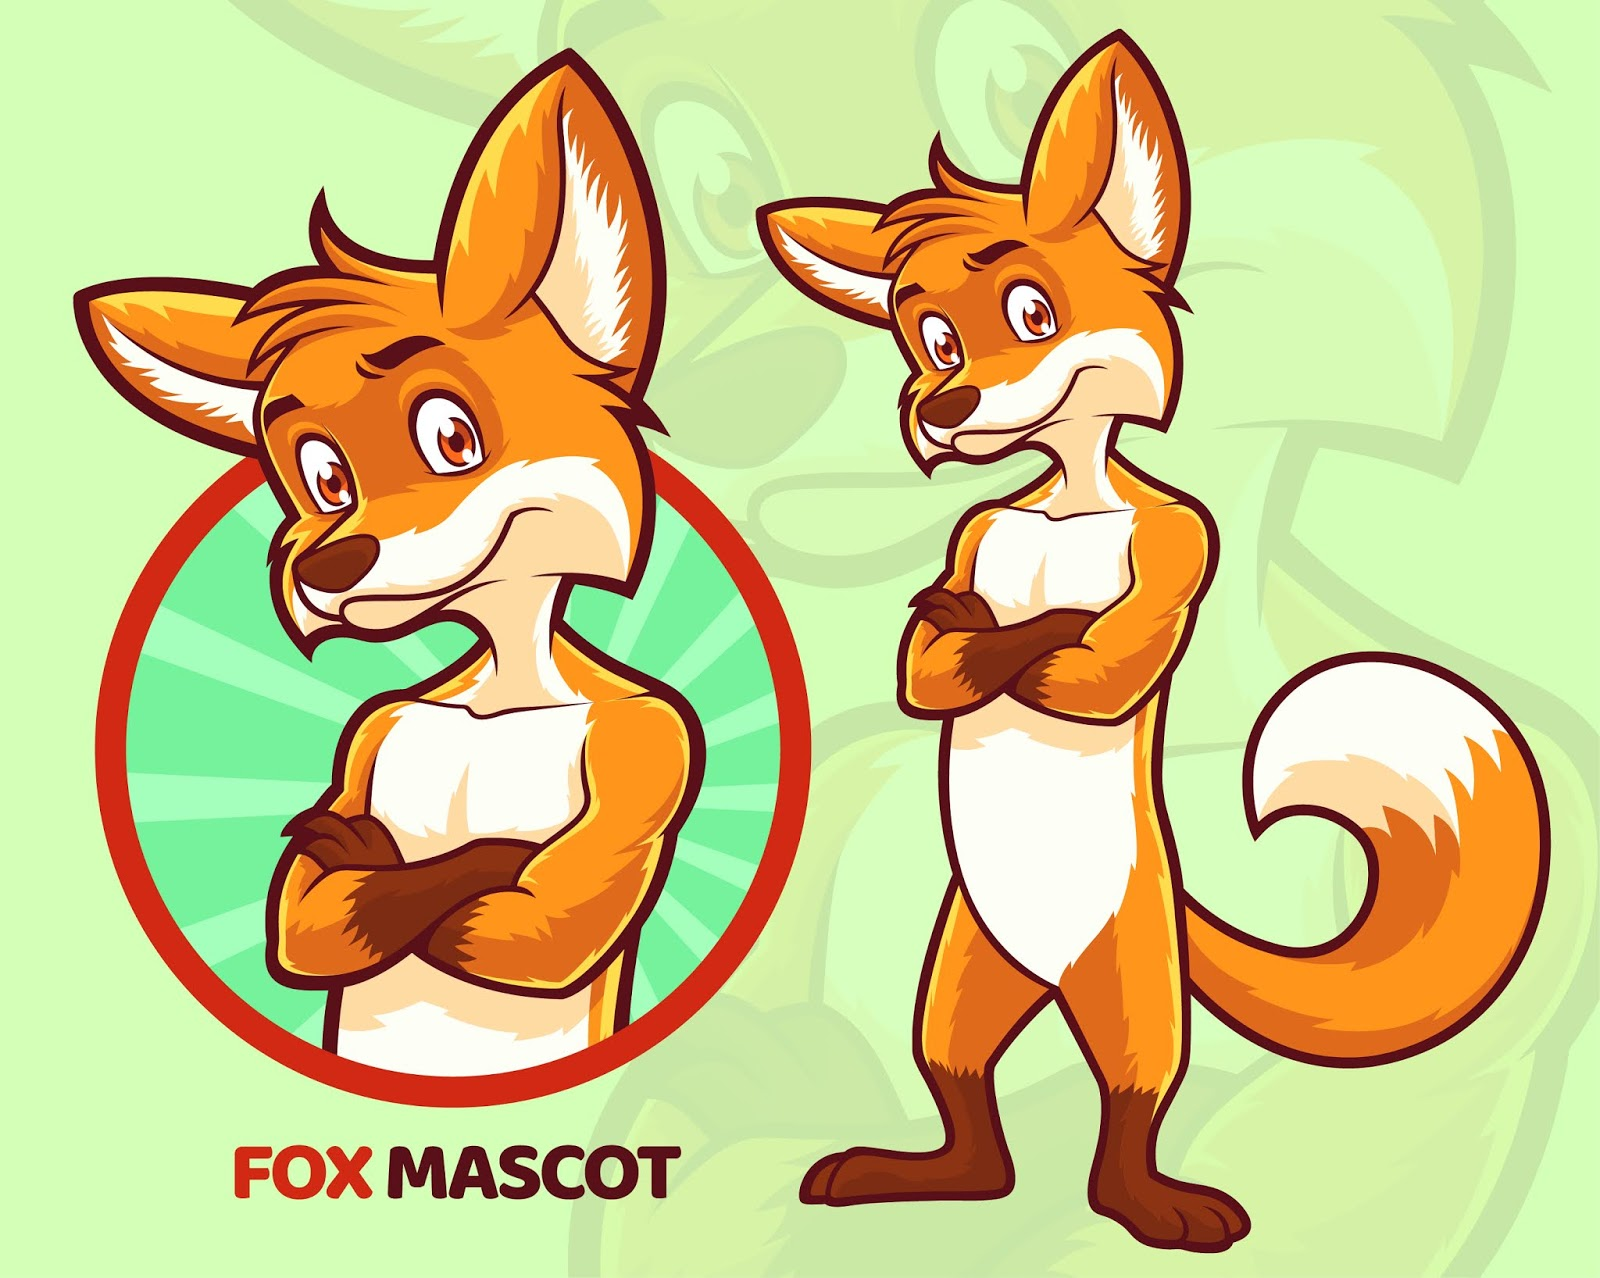 Fox Mascot Design Free Download Vector CDR, AI, EPS and PNG Formats